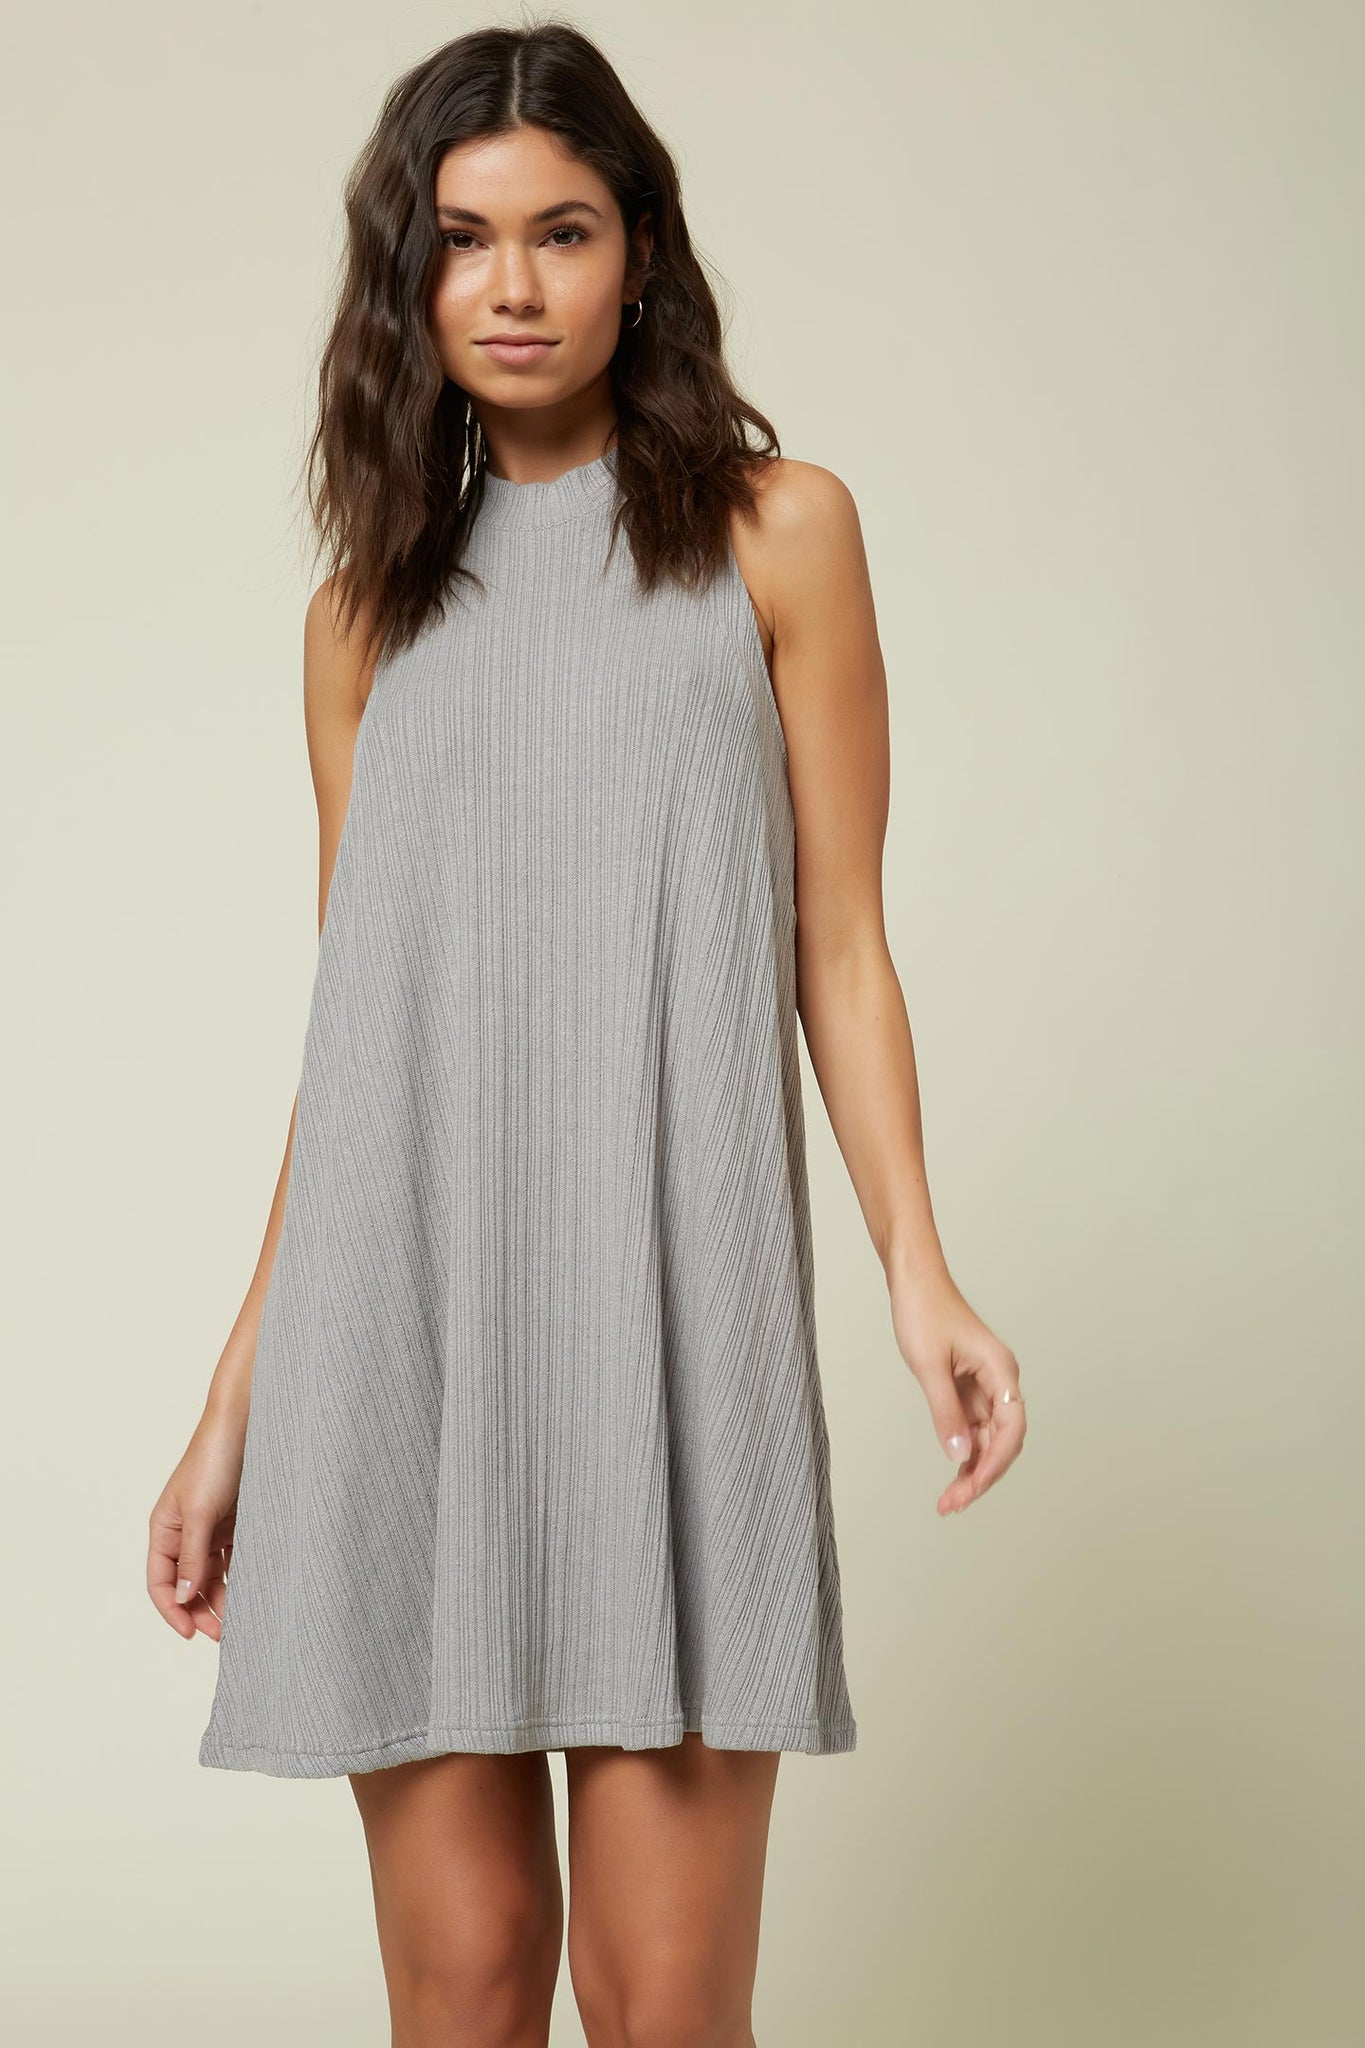 Leslie Solid Rib Knit Dress - Heather Grey | O'Neill